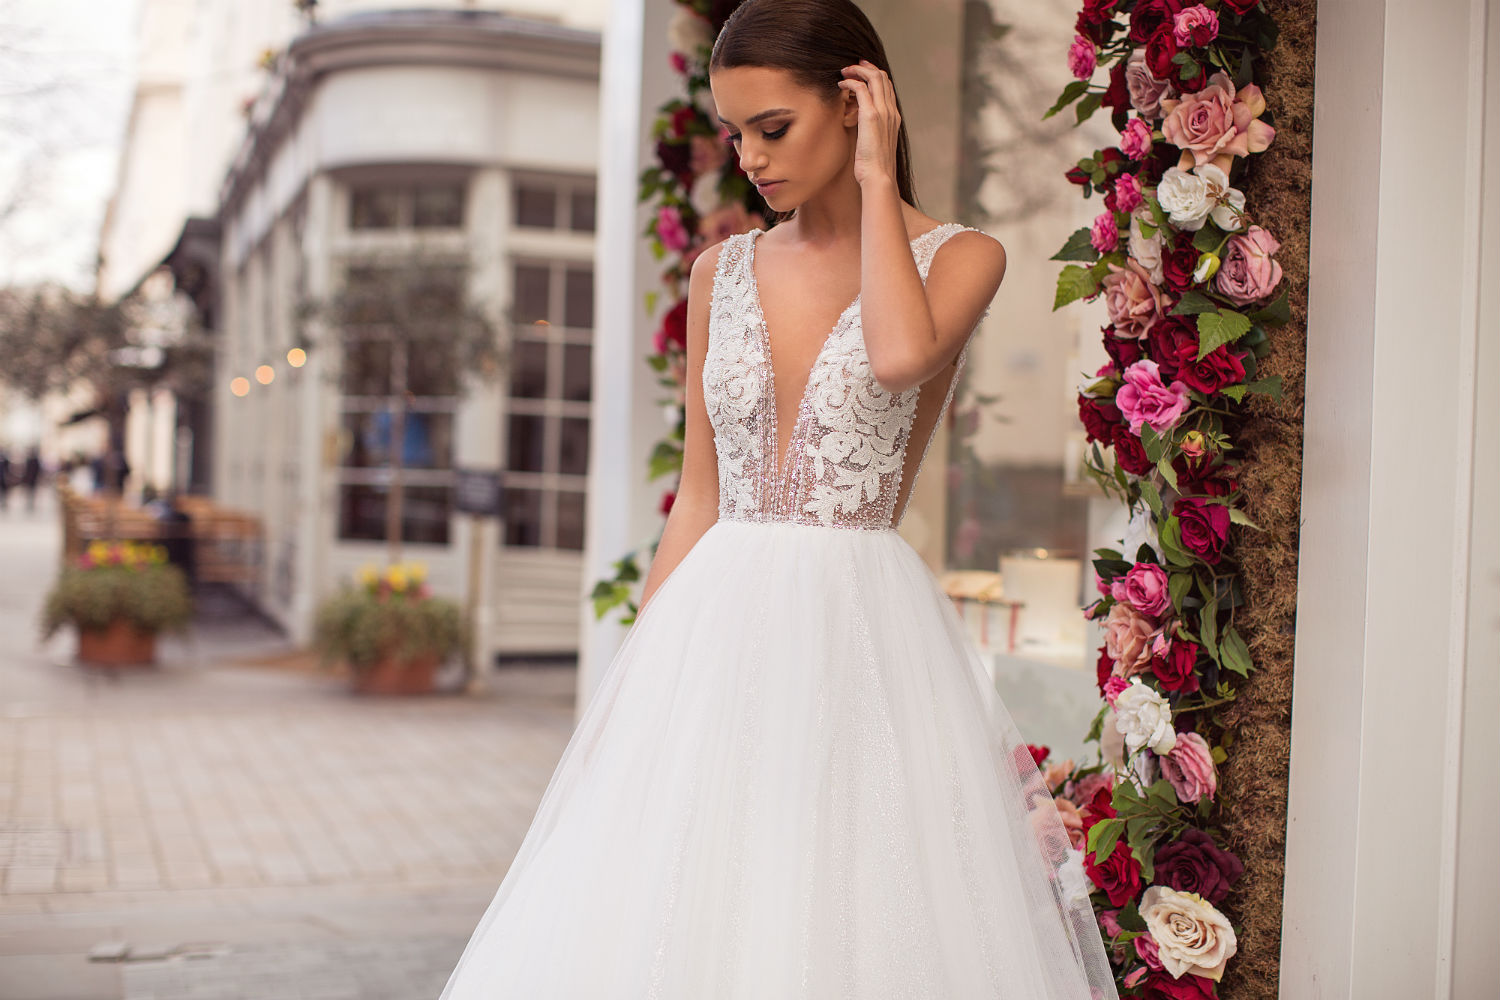 Blushing Bridal Boutique ,MillaNova, Demi, Blooming London, New Collection 2019 ,-wedding gown-Mississauga-woodbridge-vaughan-toronto-gta-ontario-canada-montreal-buffalo-NYC-california